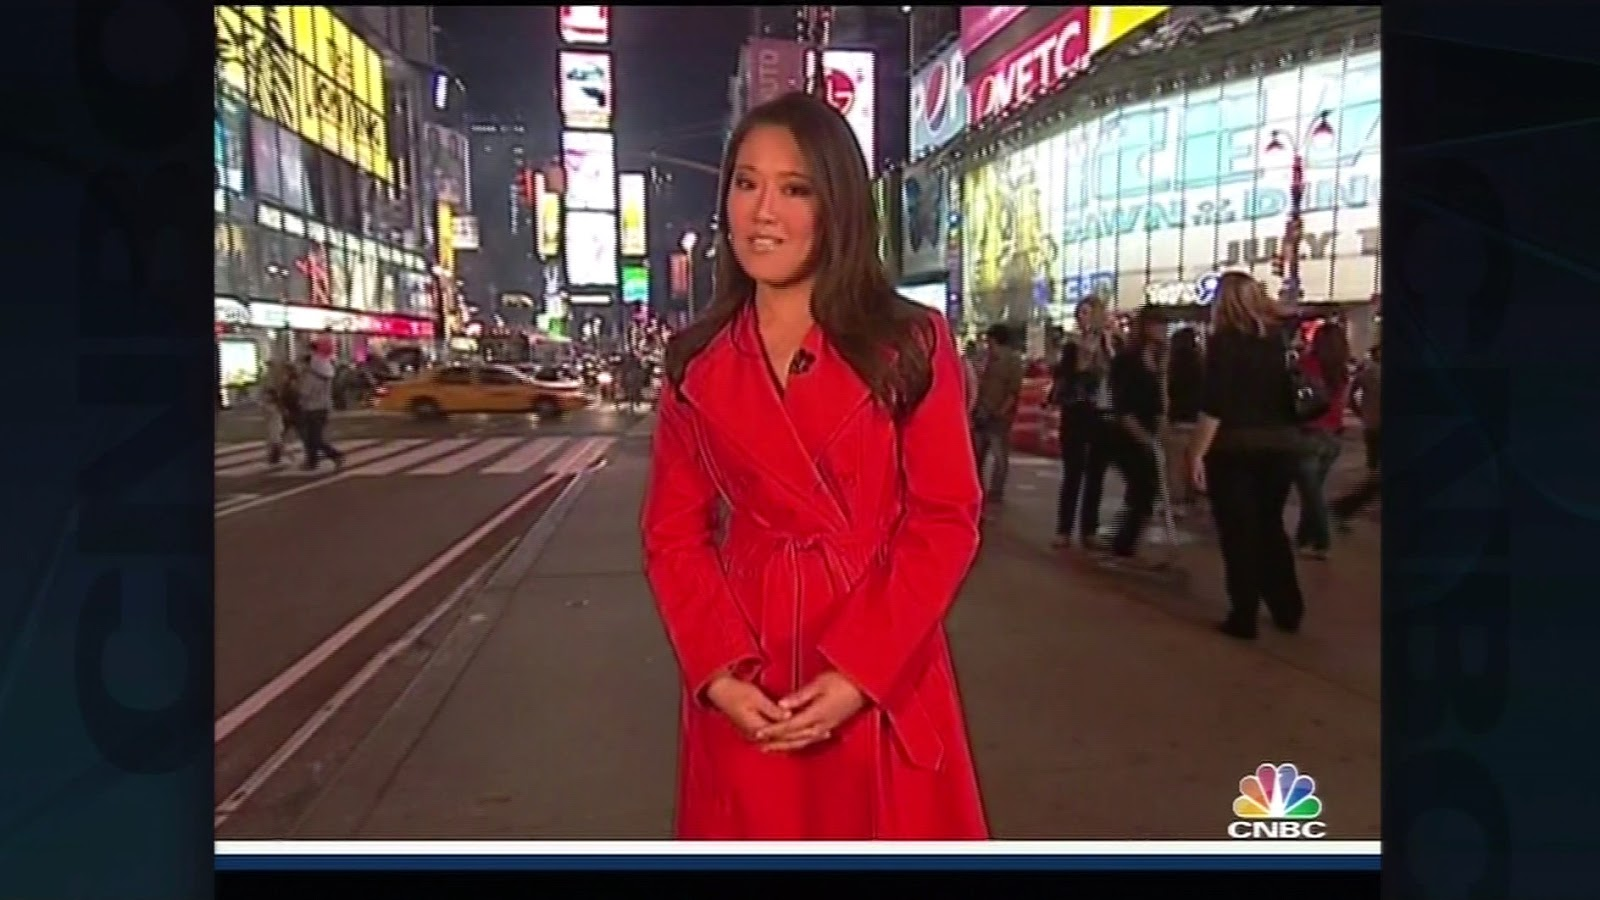 Suzie Suh KCAL 9 http://wwearboots.blogspot.com/2012/11/melissa-lee-if-you-were-like-me-and-saw.html